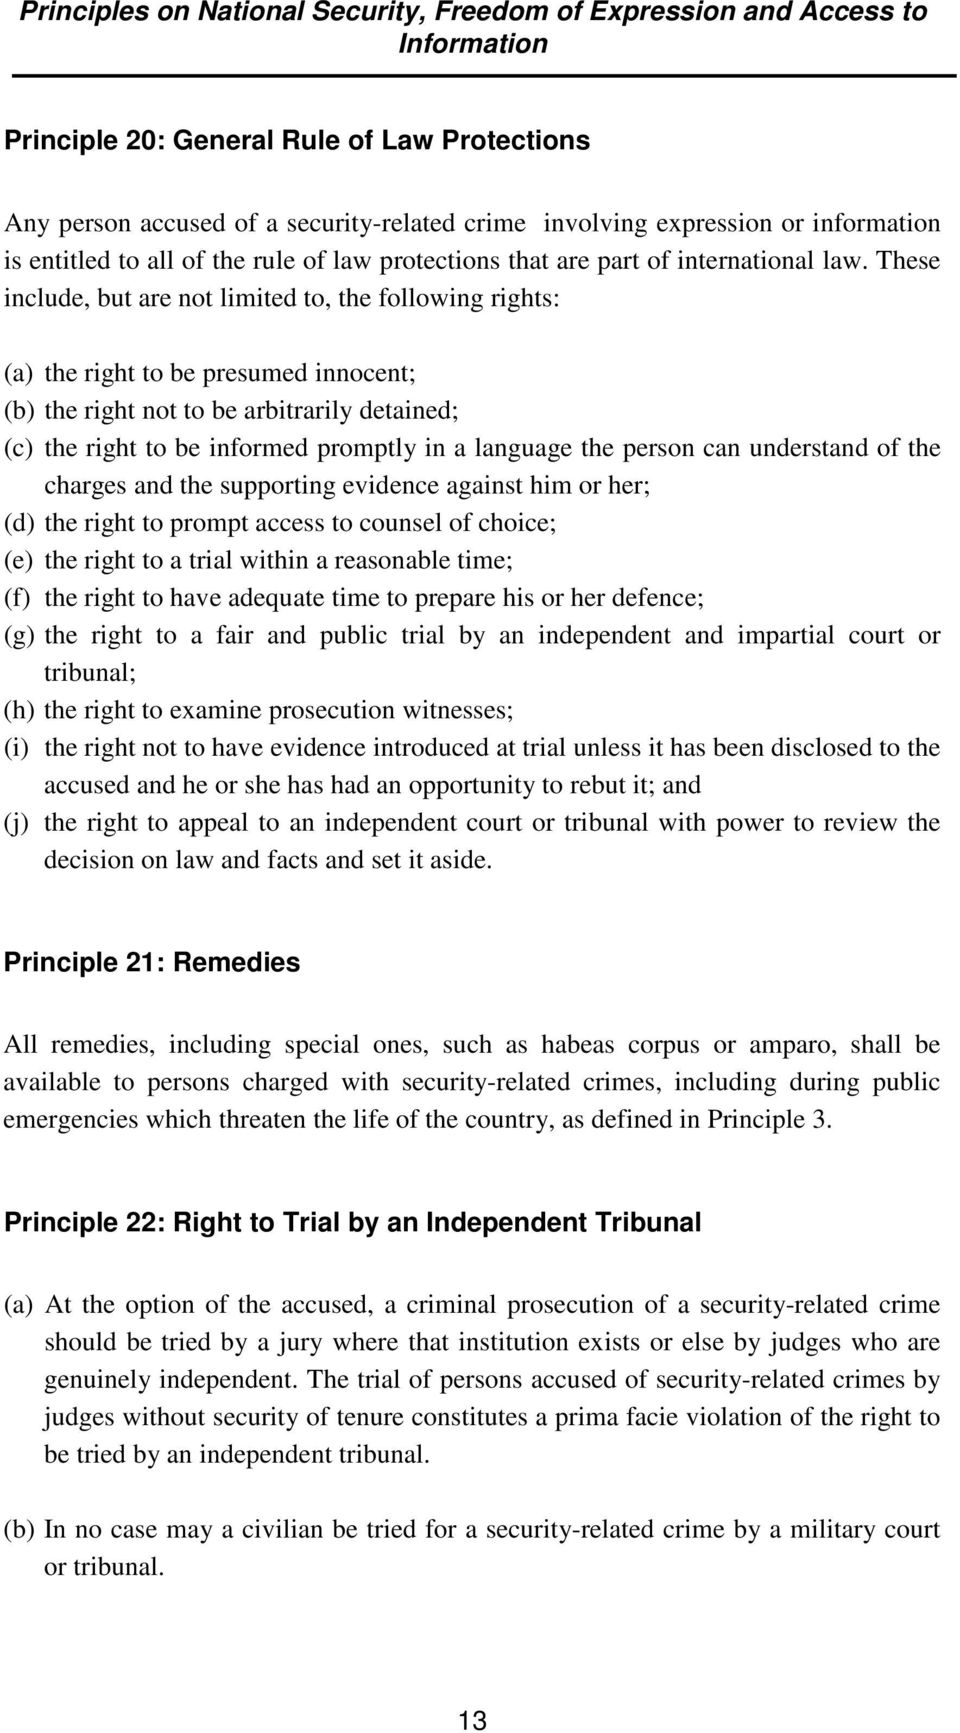 These include, but are not limited to, the following rights: (a) the right to be presumed innocent; (b) the right not to be arbitrarily detained; (c) the right to be informed promptly in a language